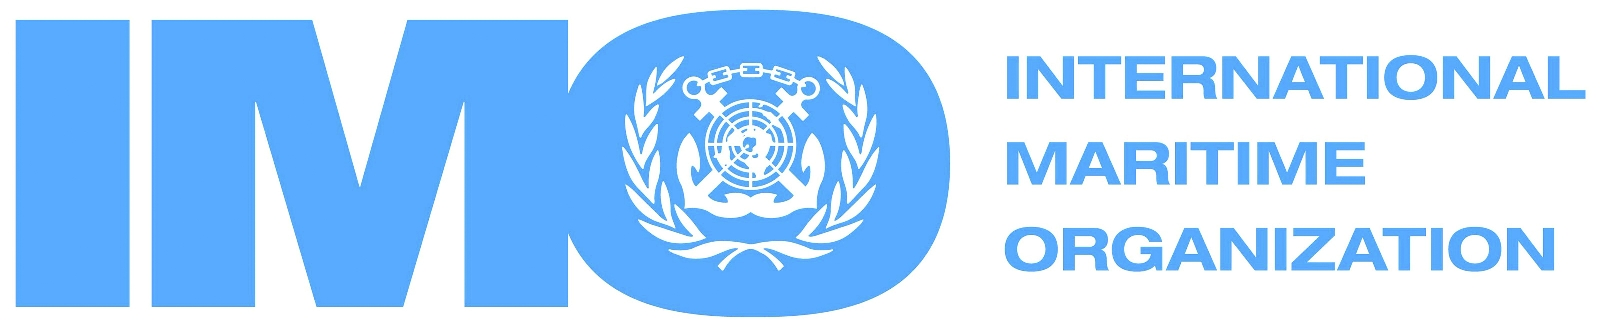 IMO calls on member states to delay enforcement of VGM rule for 3 months